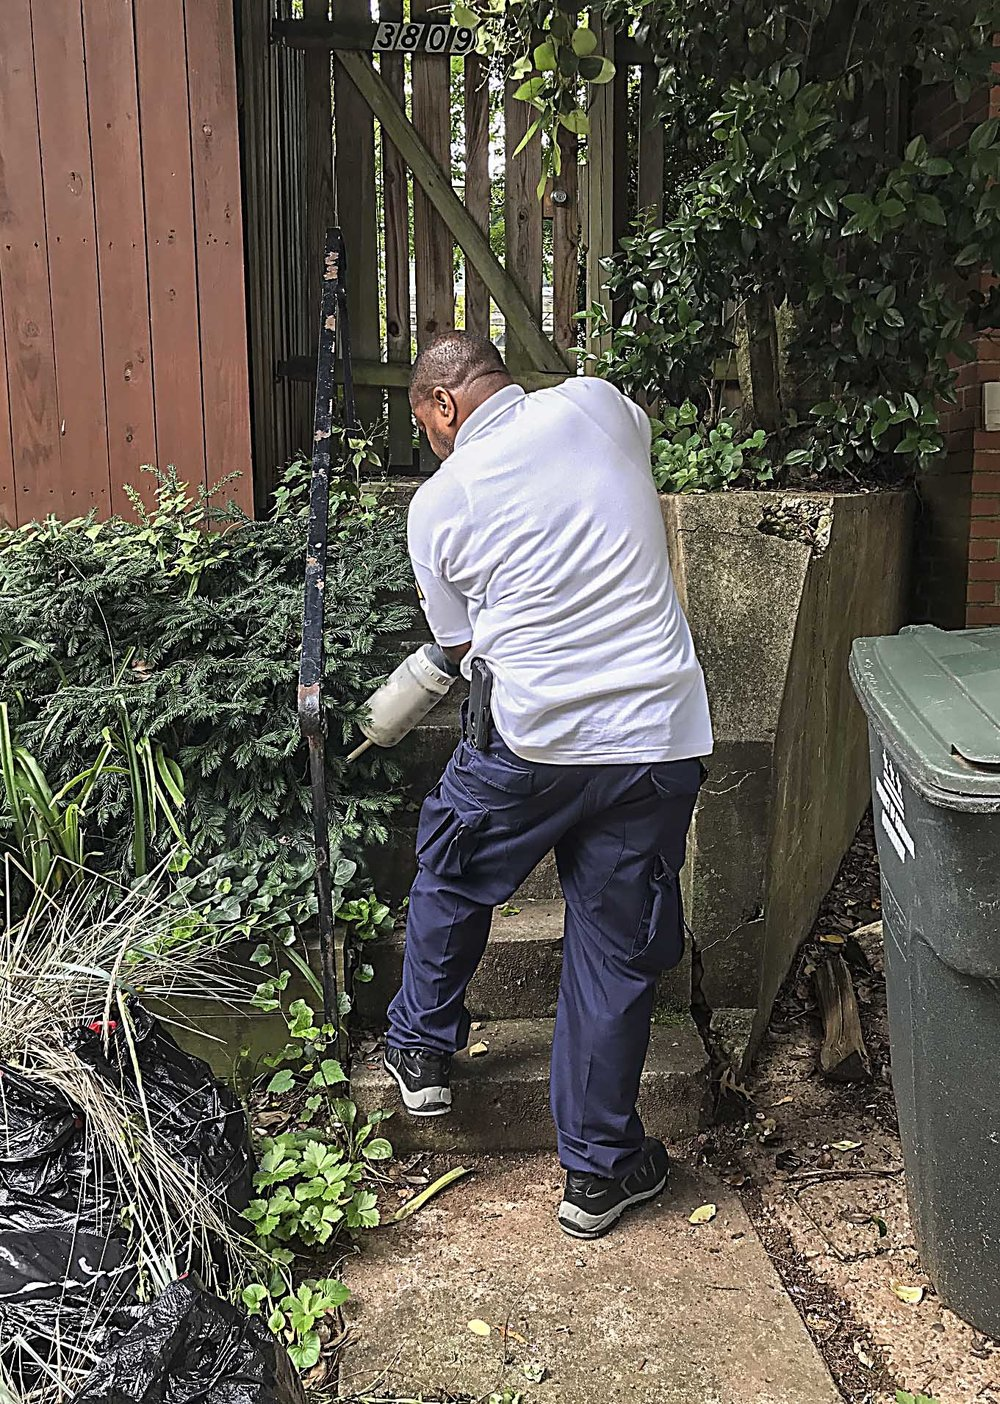 Rodent Control employee sprays a rat burrow.